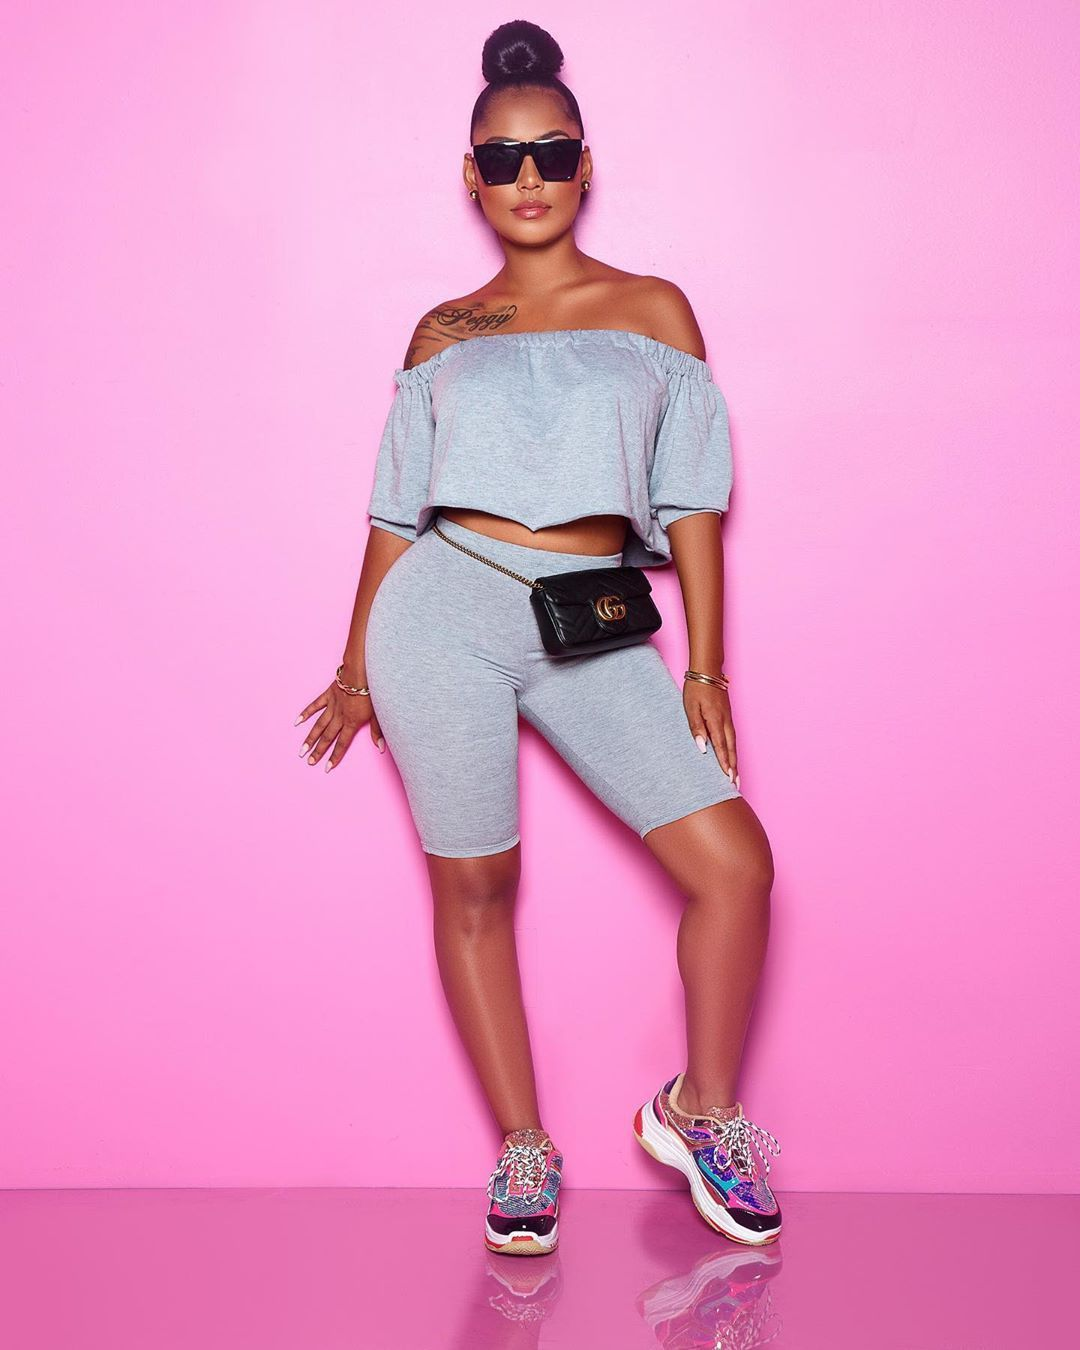 Chic Couture Online on Instagram New for Summer  Search Kikas Set  Flag Tennis Shoes Chic Couture Online on Instagram New for Summer  Search Kikas Set  Flag Tennis Shoes...